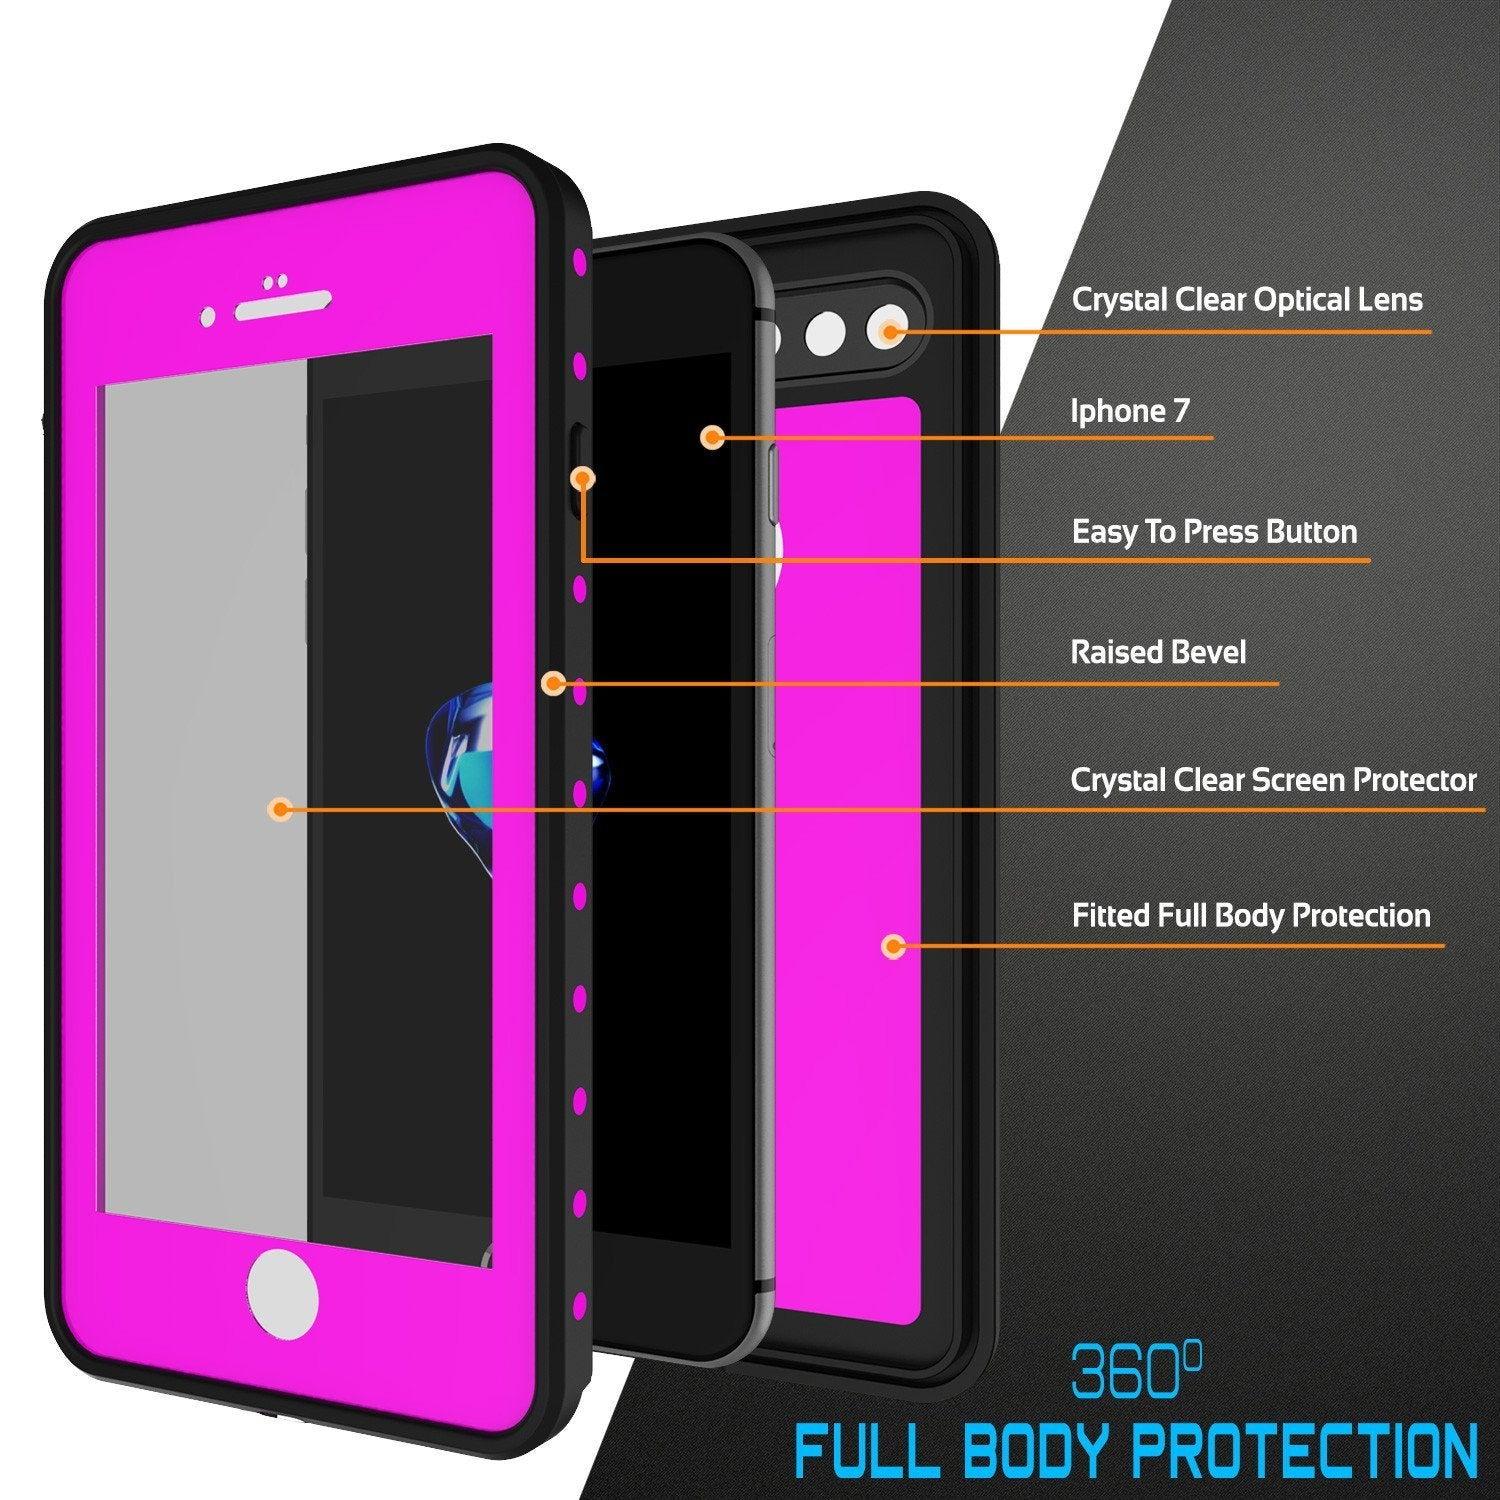 iPhone 8+ Plus Waterproof IP68 Case, Punkcase [Pink] [StudStar Series] [Slim Fit] [Dirtproof] - PunkCase NZ